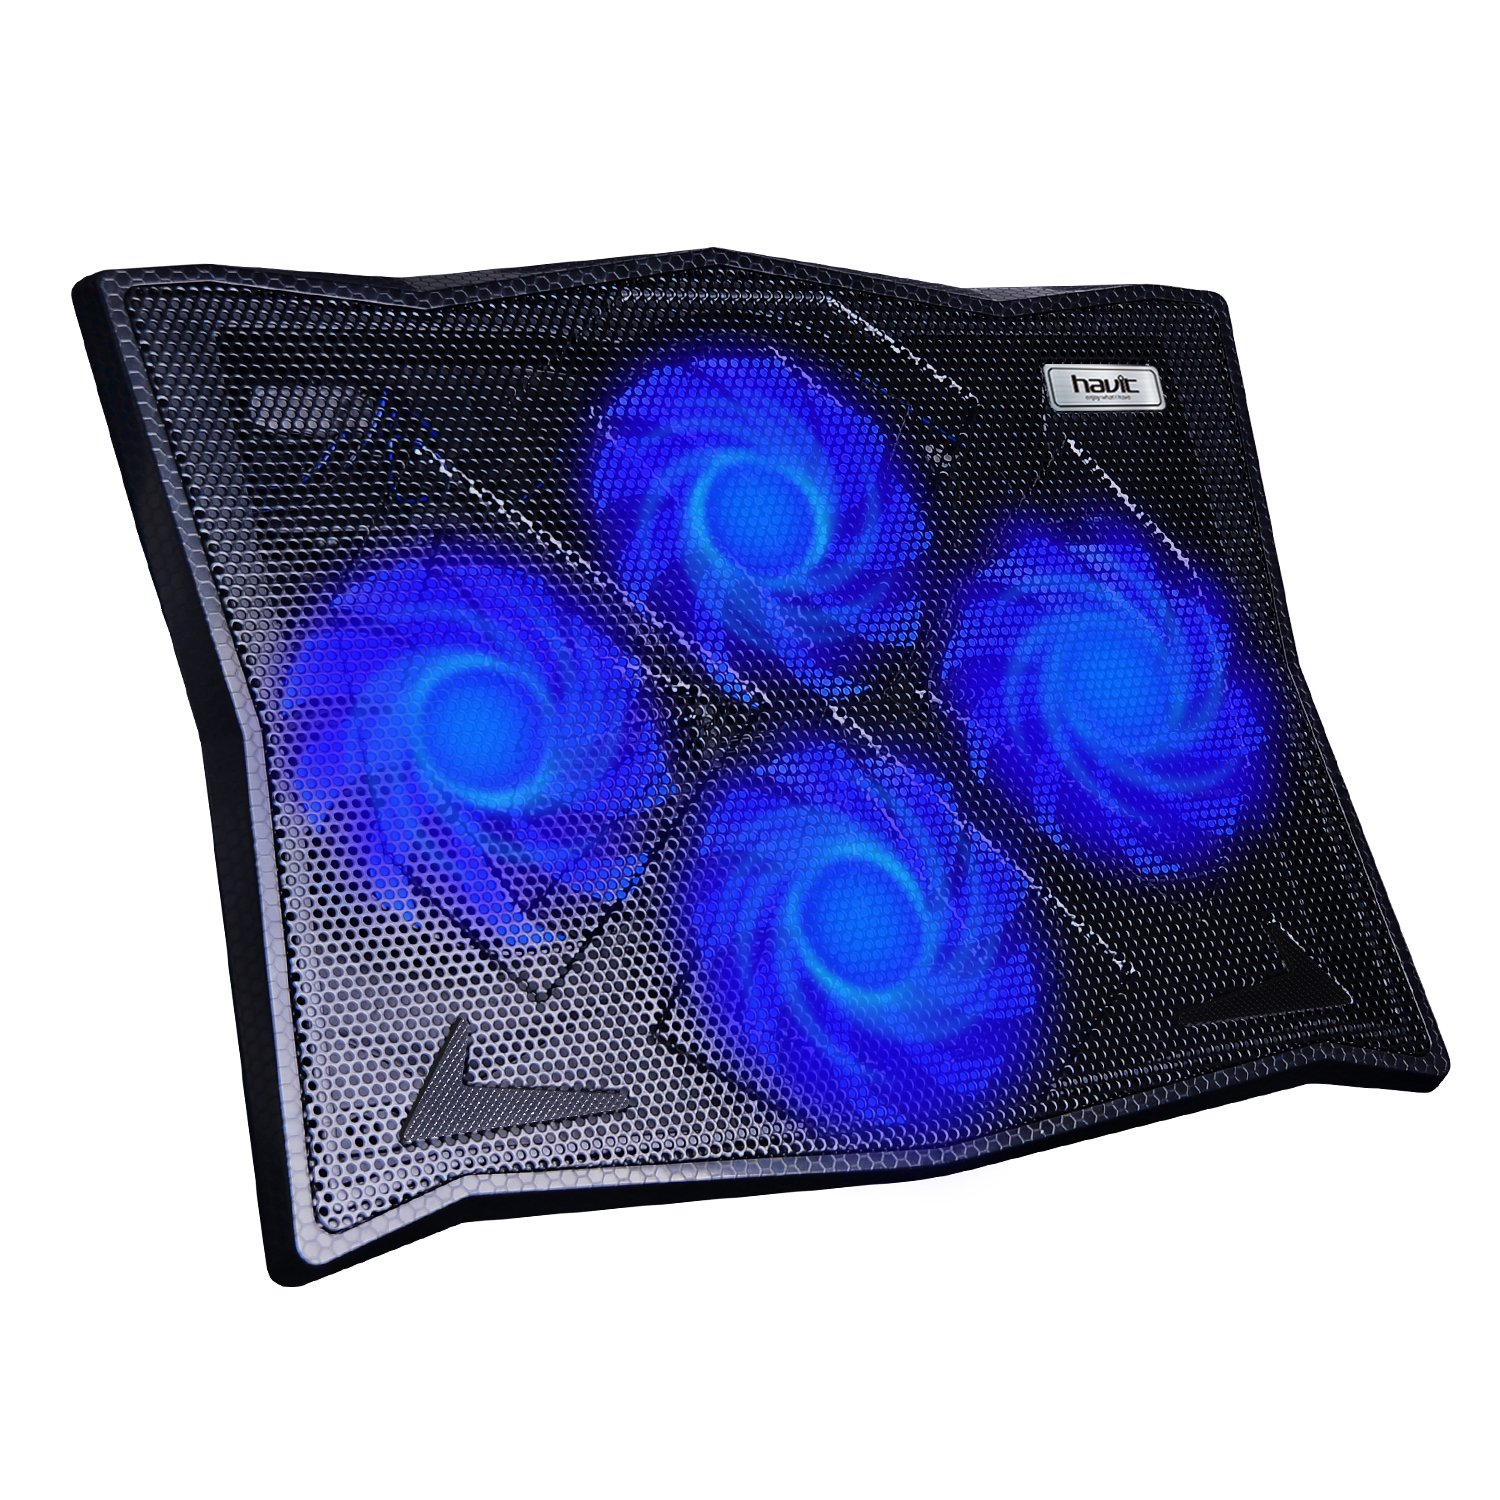 HAVIT HV-F2063A Cooling Pad for 14-17 Inch Laptops with Four 110mm Fans at 1100 RPM (Black)